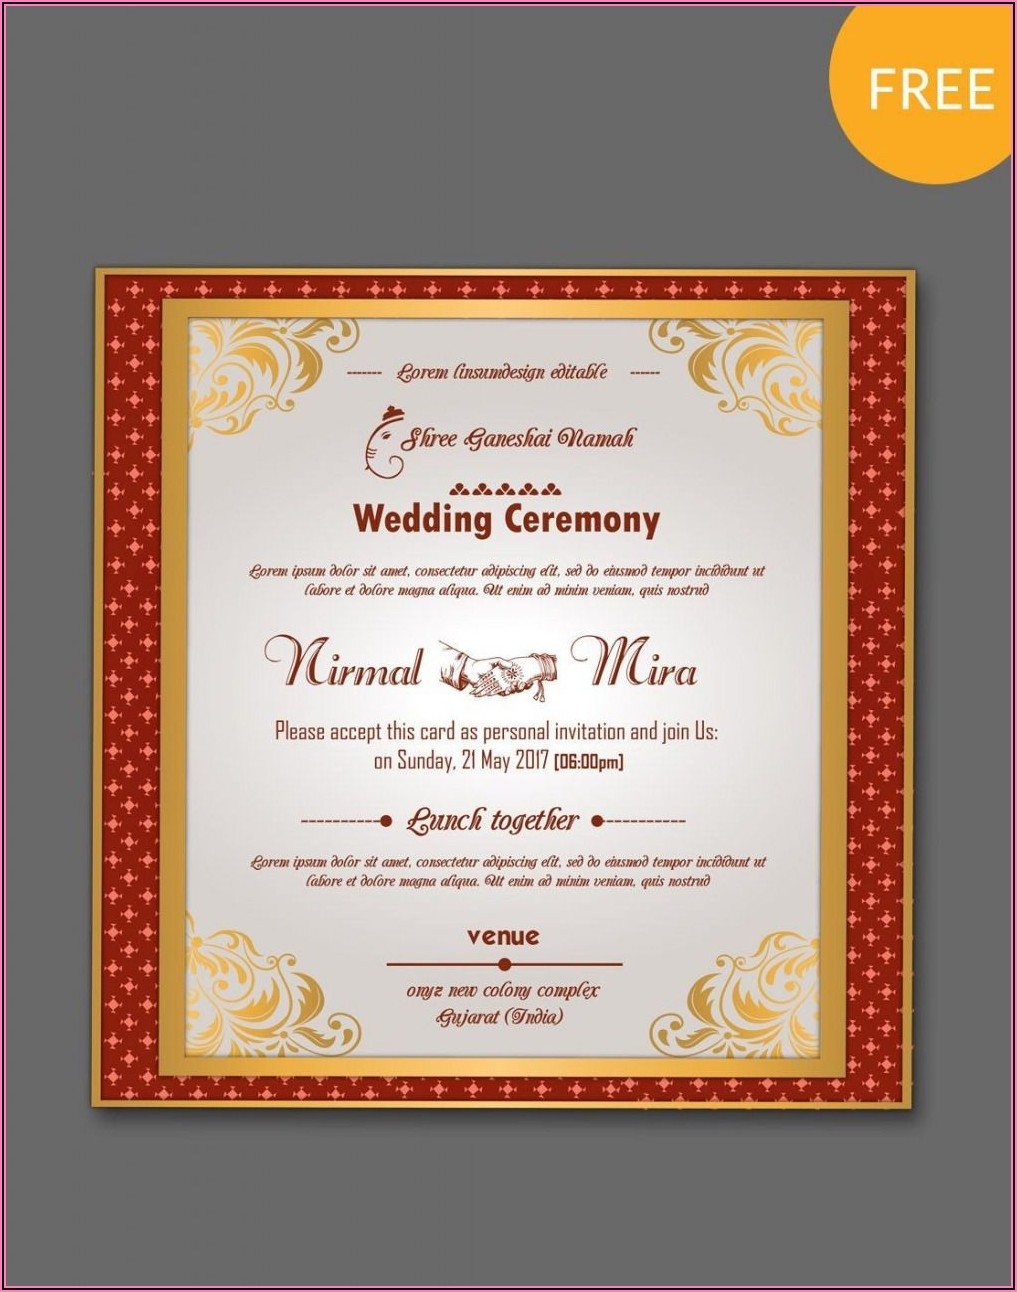 Hindu Wedding Invitation Cards Templates Free Download